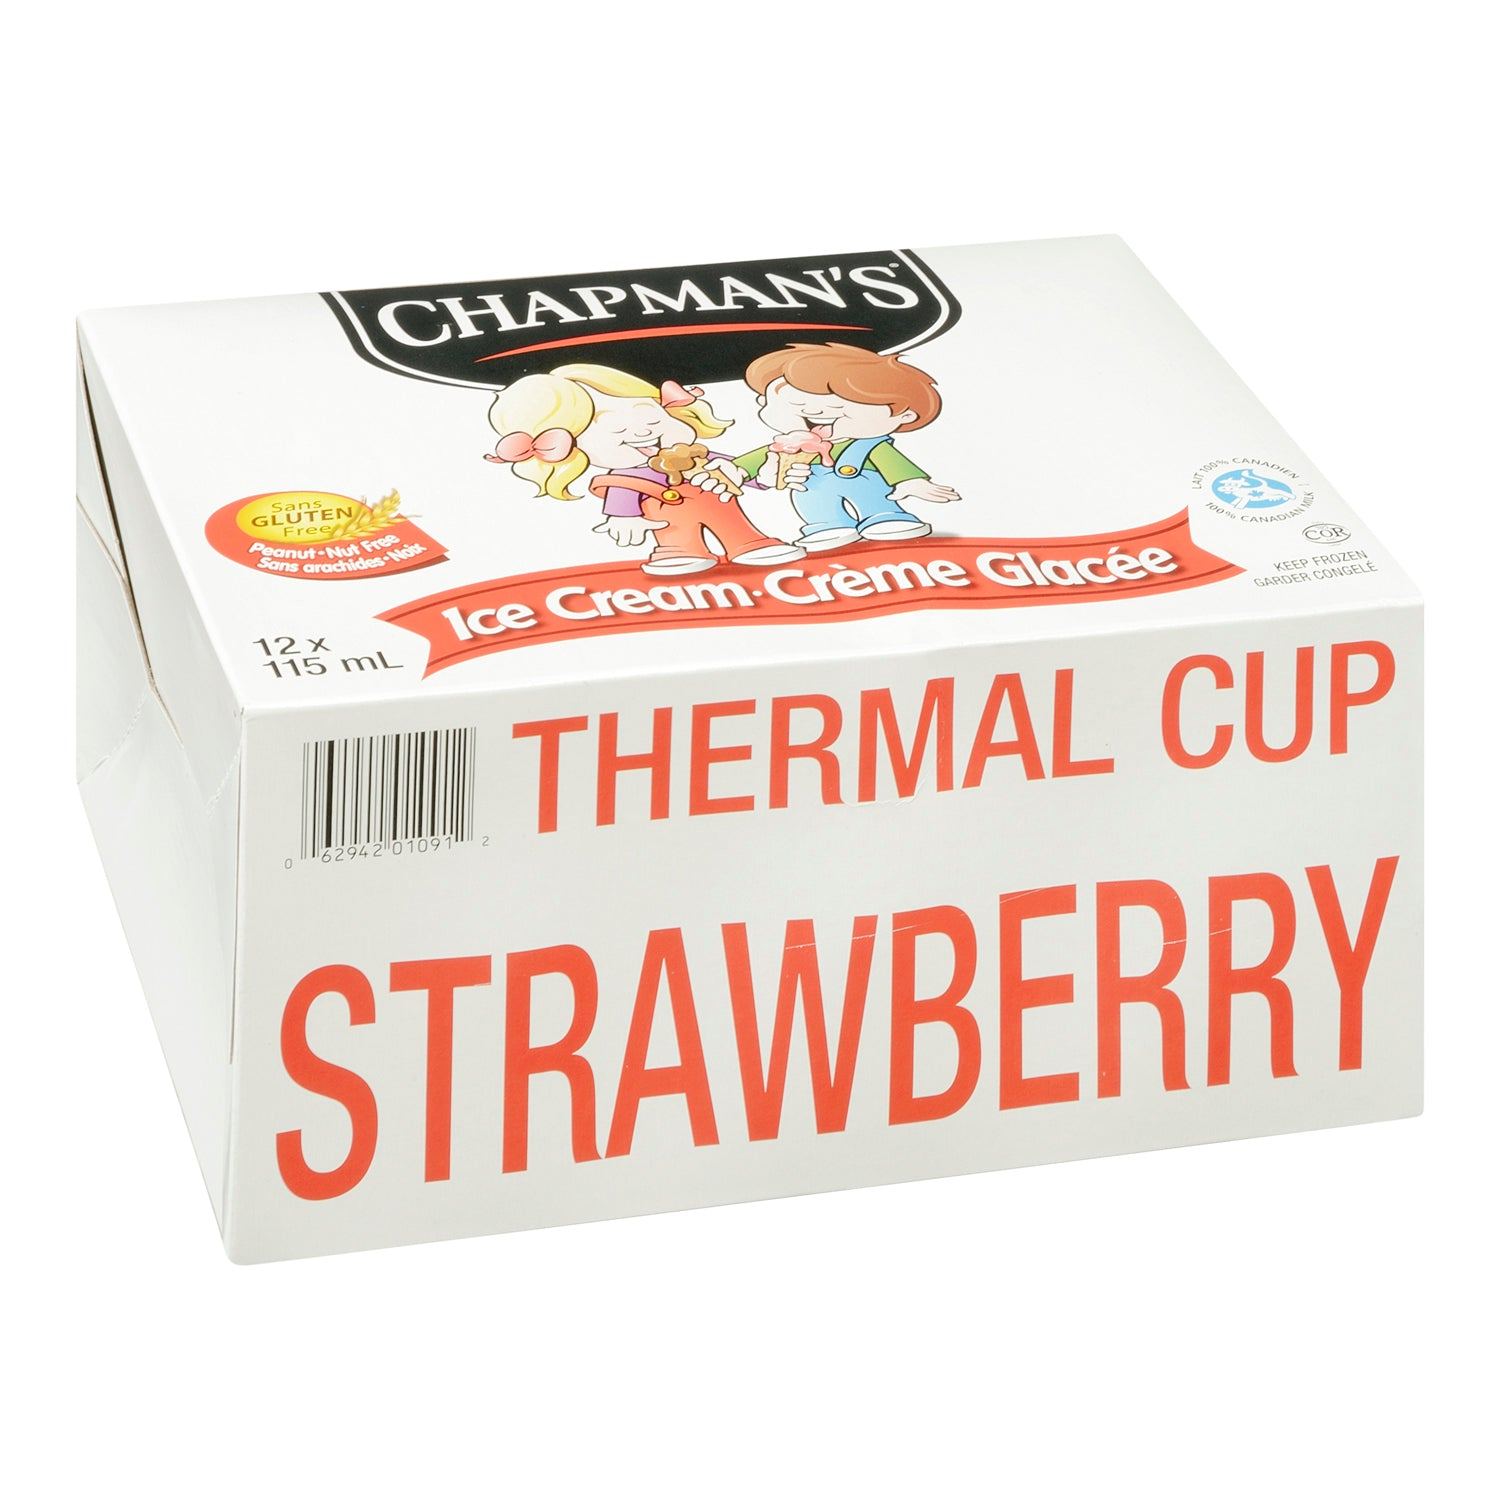 Chapman's Frozen Strawberry Ice Cream Cups 115 ml - 24 Pack [$0.54/each]